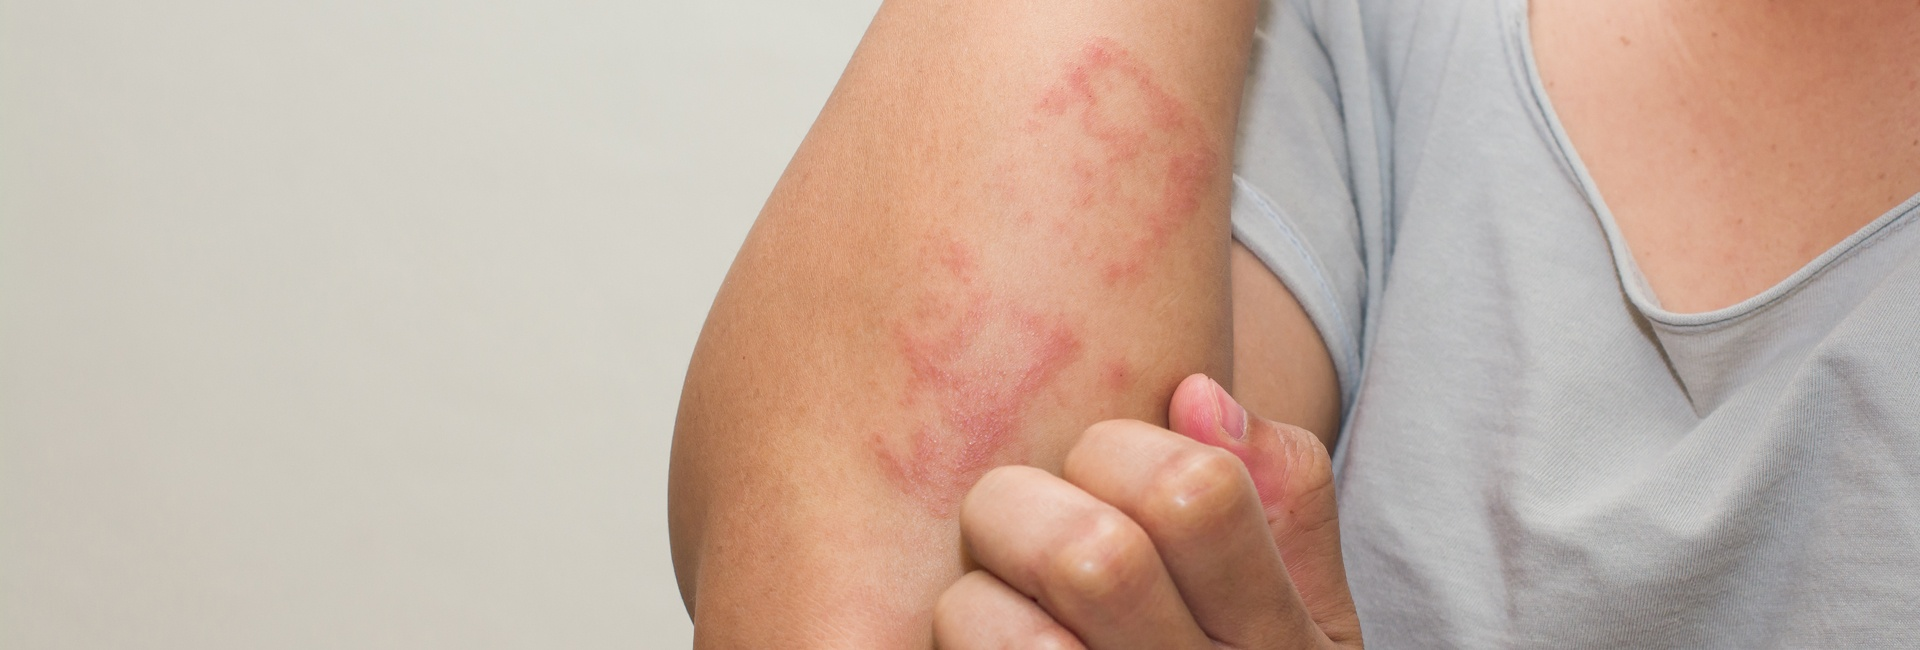 What is Eczema? Can Eczema be Treated?